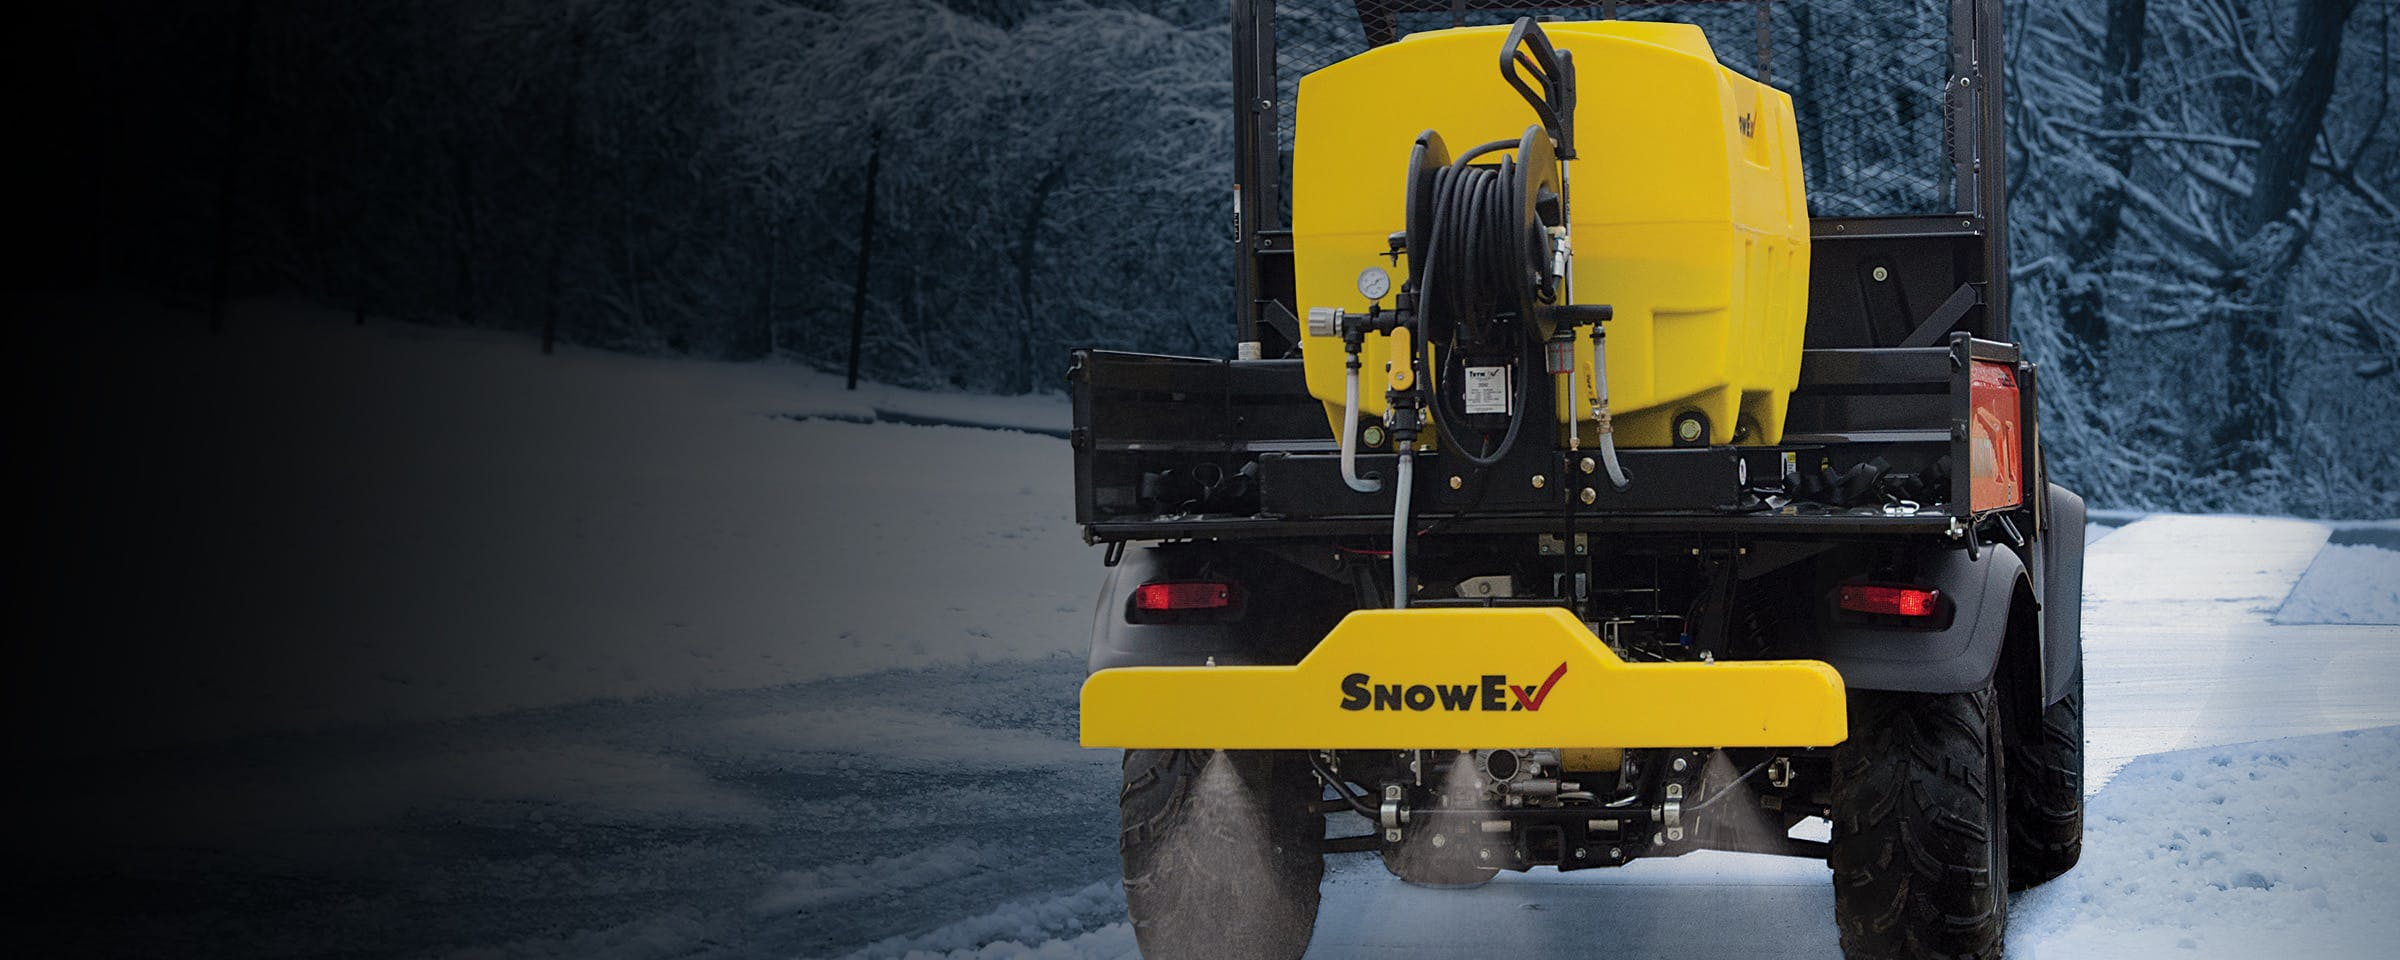 Liquid ice control can often be more accurate, effective, and use less material, than sand/salt applications, saving you money and resources. SnowEx is an innovator in this market, offering several liquid sprayer options, from pre-wet systems for spreaders to UTV bed sprayers to walk-behind sprayers.